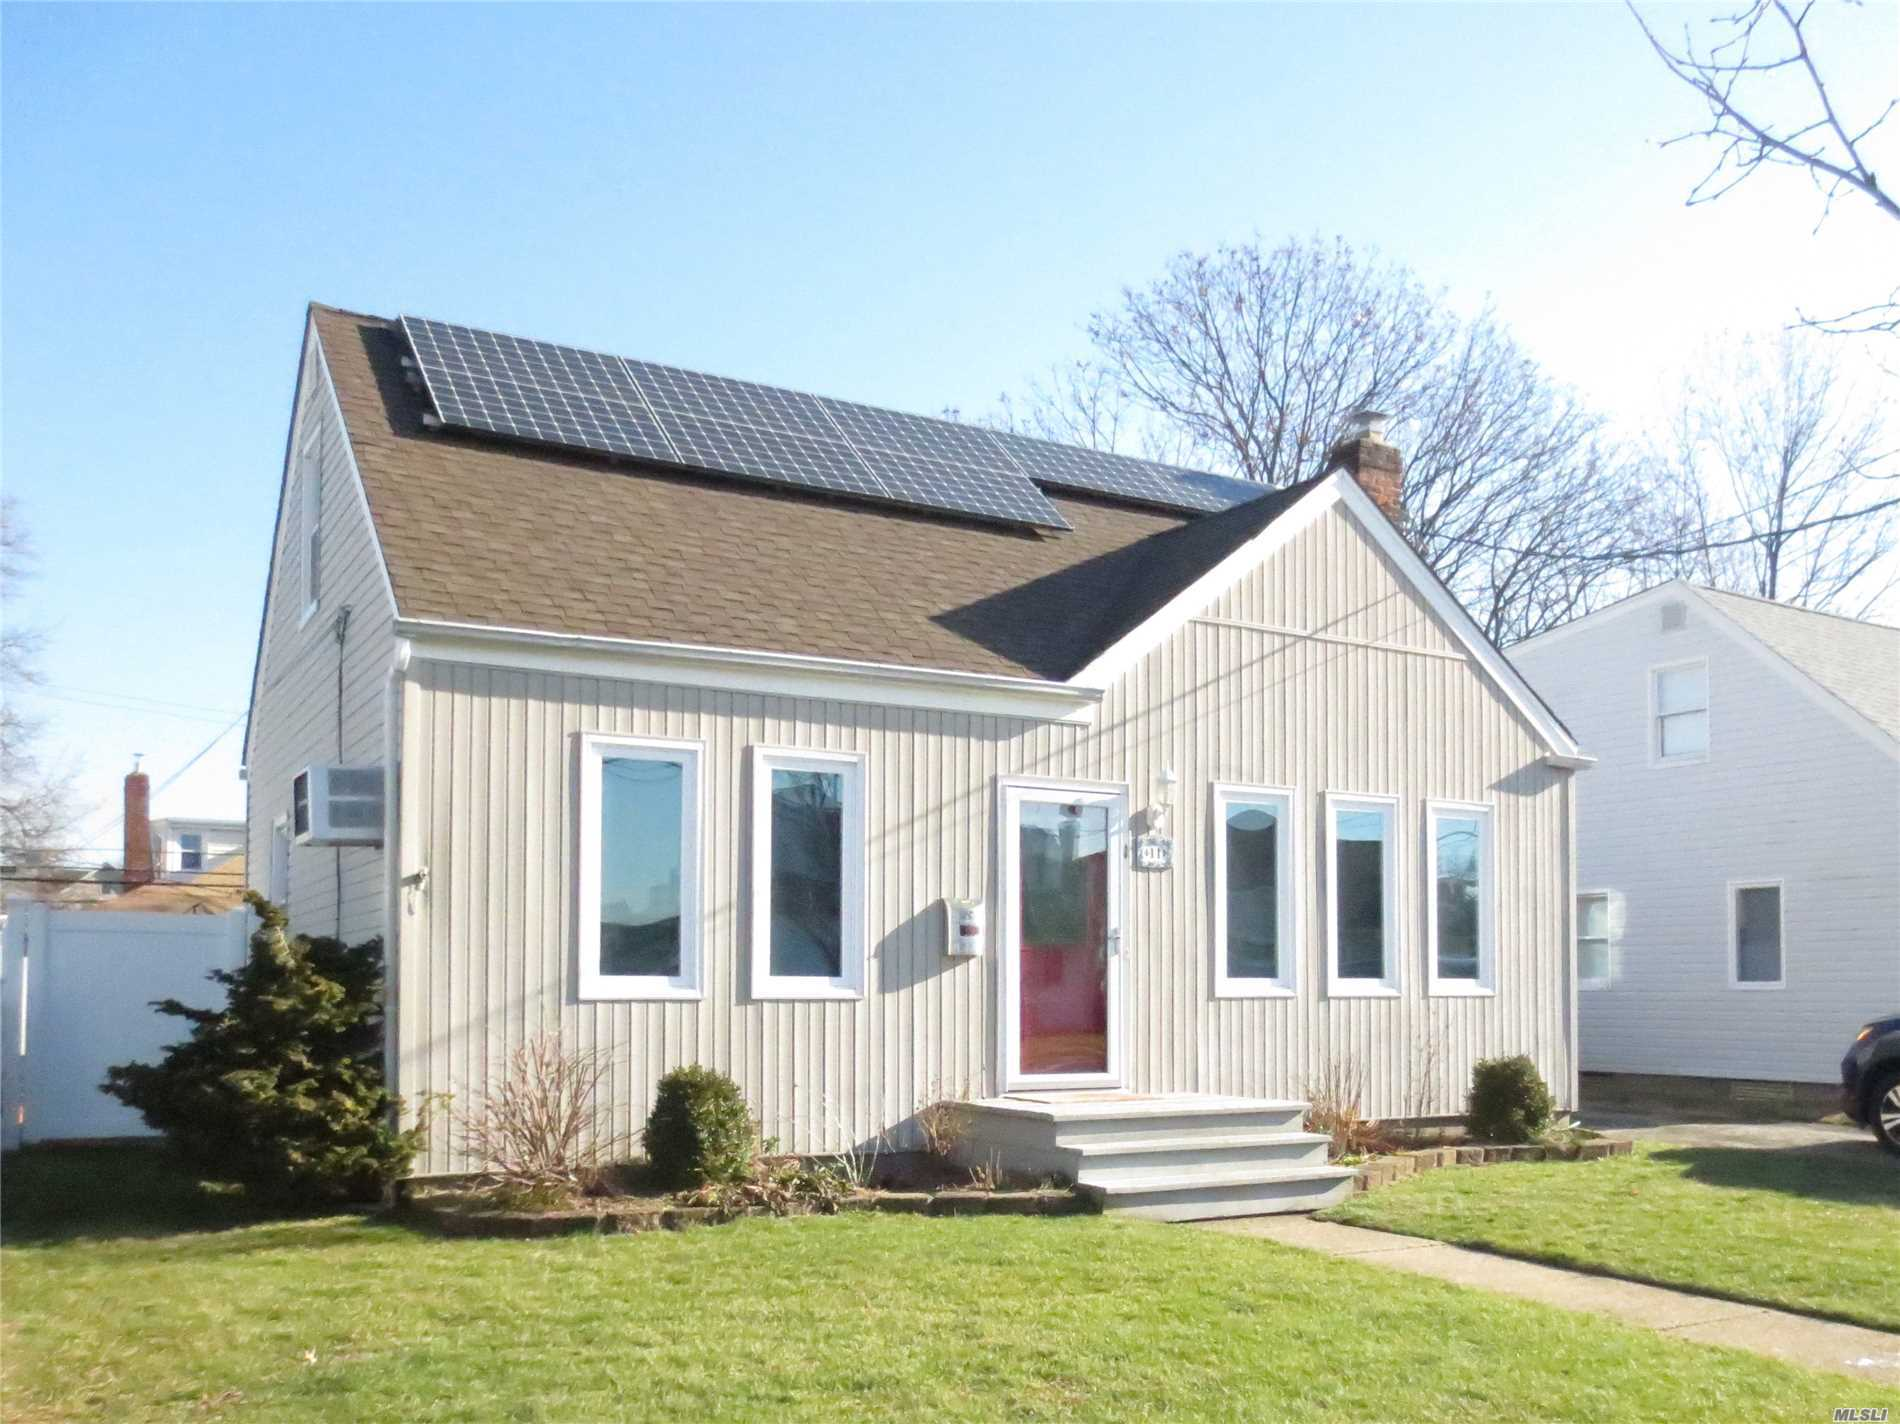 Beautiful Cape Located Mid-Block In South Merrick. Updated Throughout: Tank-Less Water Heater, Gas Heat, Windows, Roof, Eat-In-Kitchen, Bathroom And Electric; Sliding Doors To Cedar Deck For Entertaining With Gas Line To Barbque; Fenced Property; Solar Panels (Owned) Close To Shops, Houses Of Worship, Parkways; Just Unpack And Move In! Owner Pays $604 Yearly For Flood Insurance; Low Taxes $7201, 80 With Star!! Lakeside Elementary, Kennedy High School.